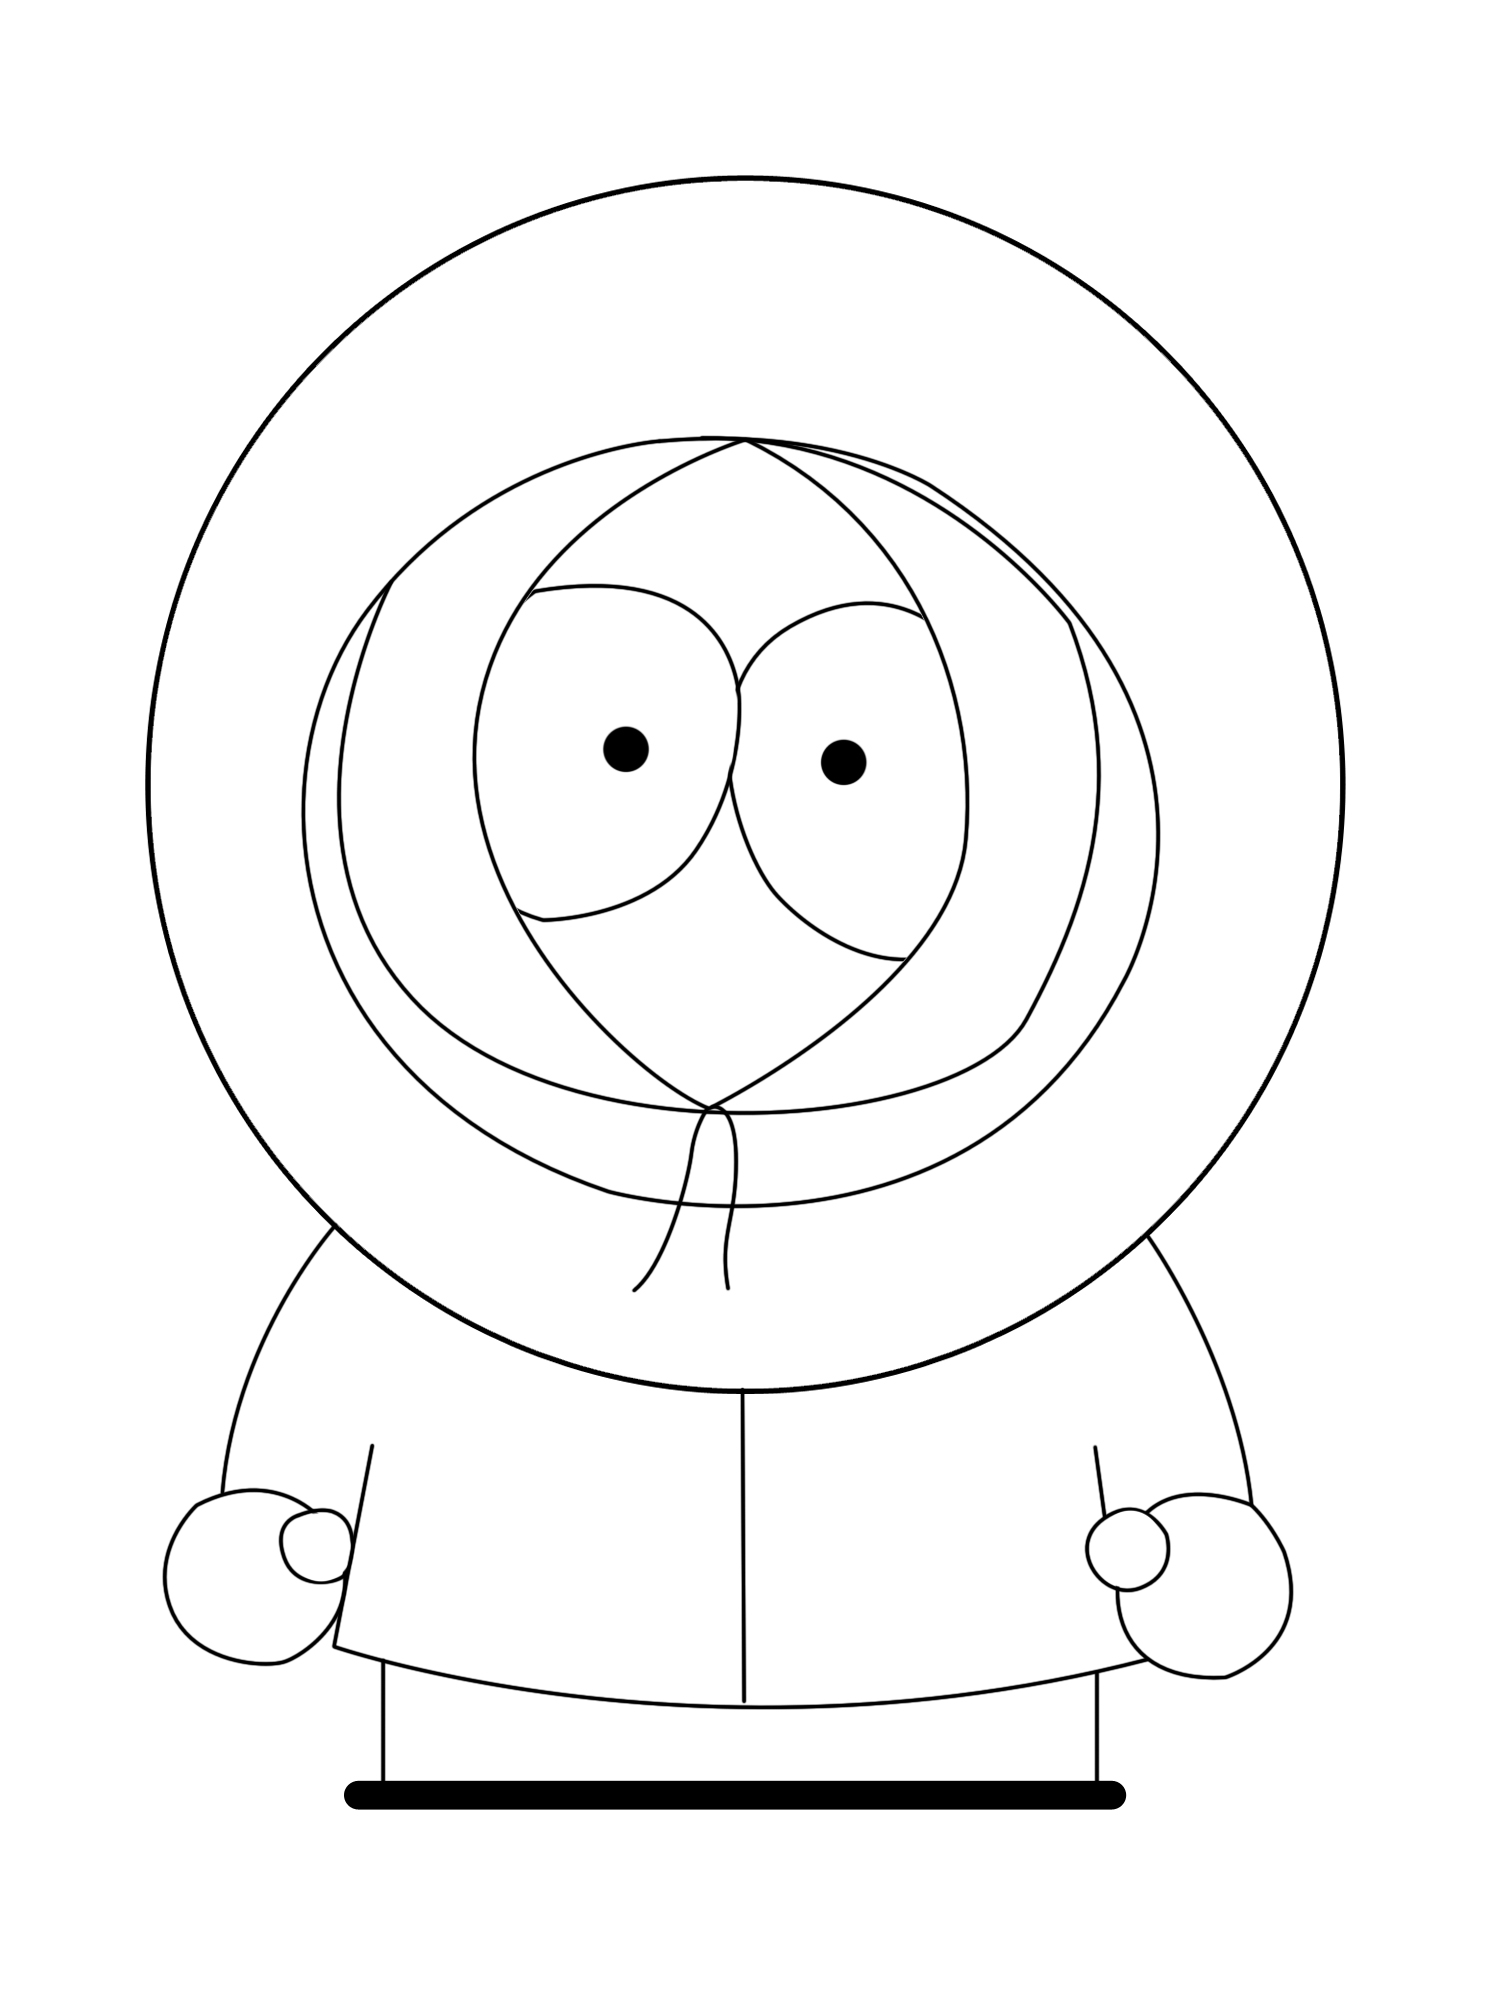 1492x1991 Colorful Free Printable South Park Coloring Pa